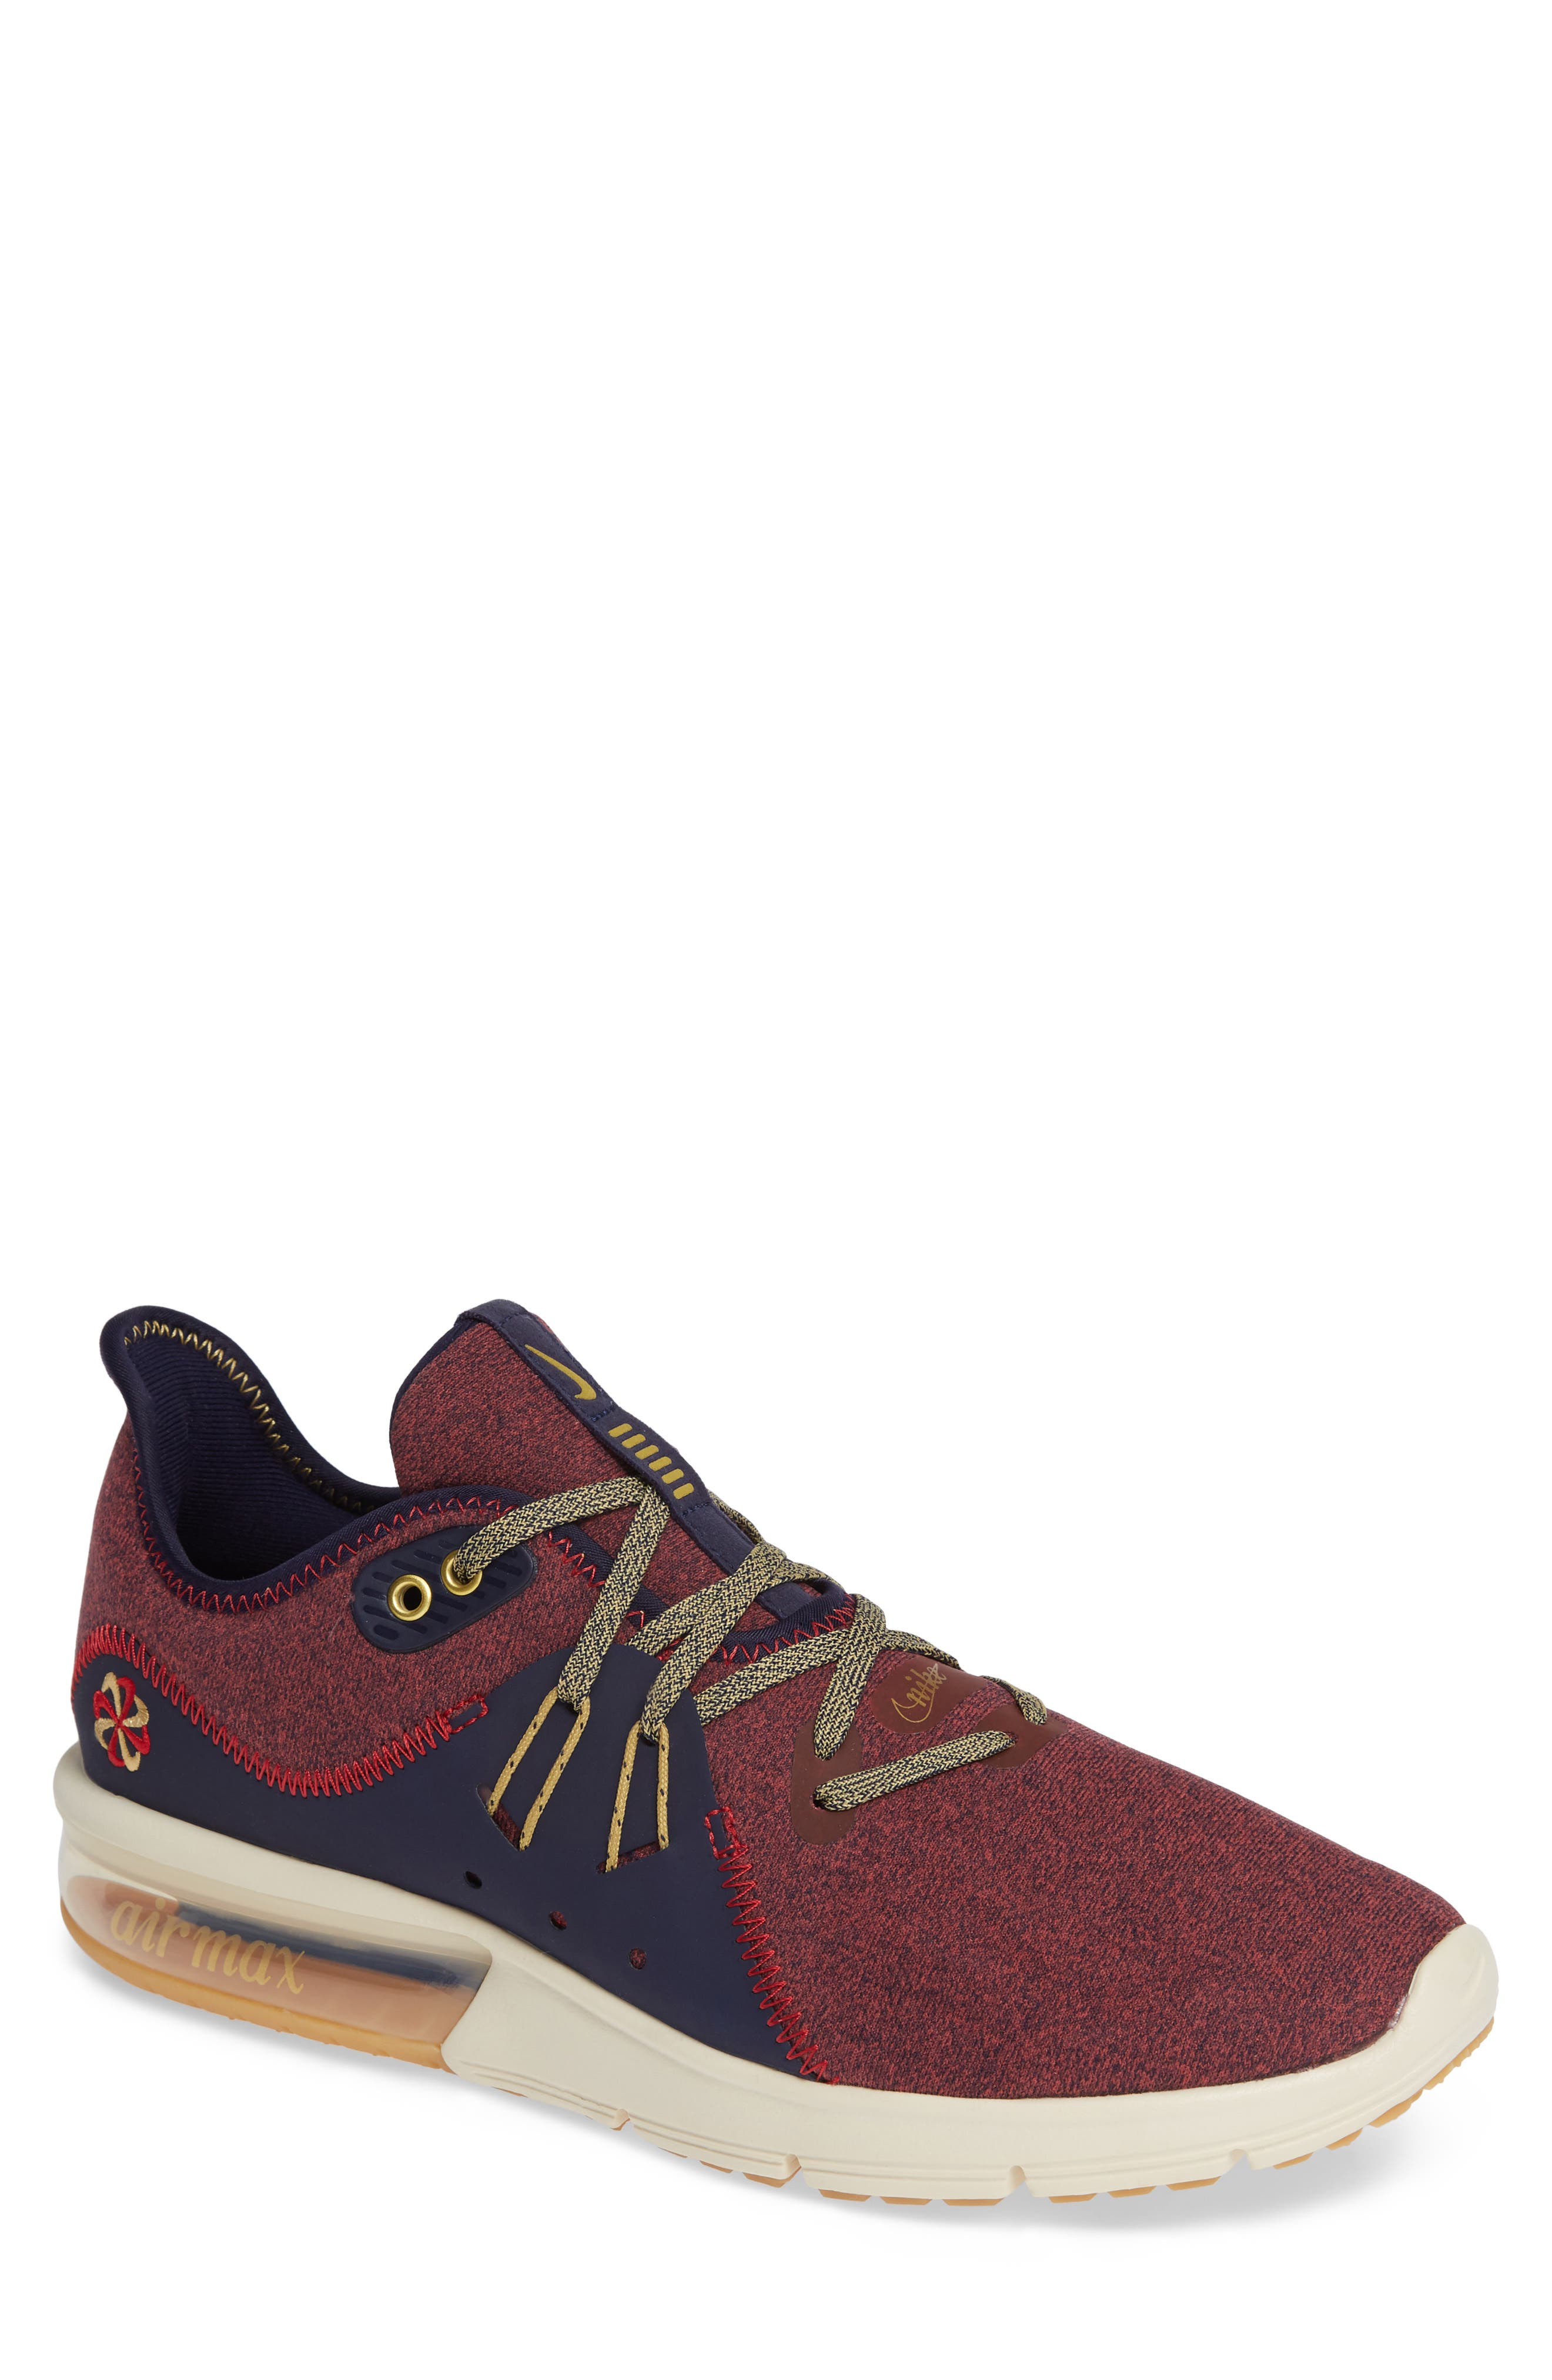 Air Max Sequent 3 PRM VST Sneaker,                         Main,                         color, RED CRUSH/ WHEAT GOLD/ BLUE